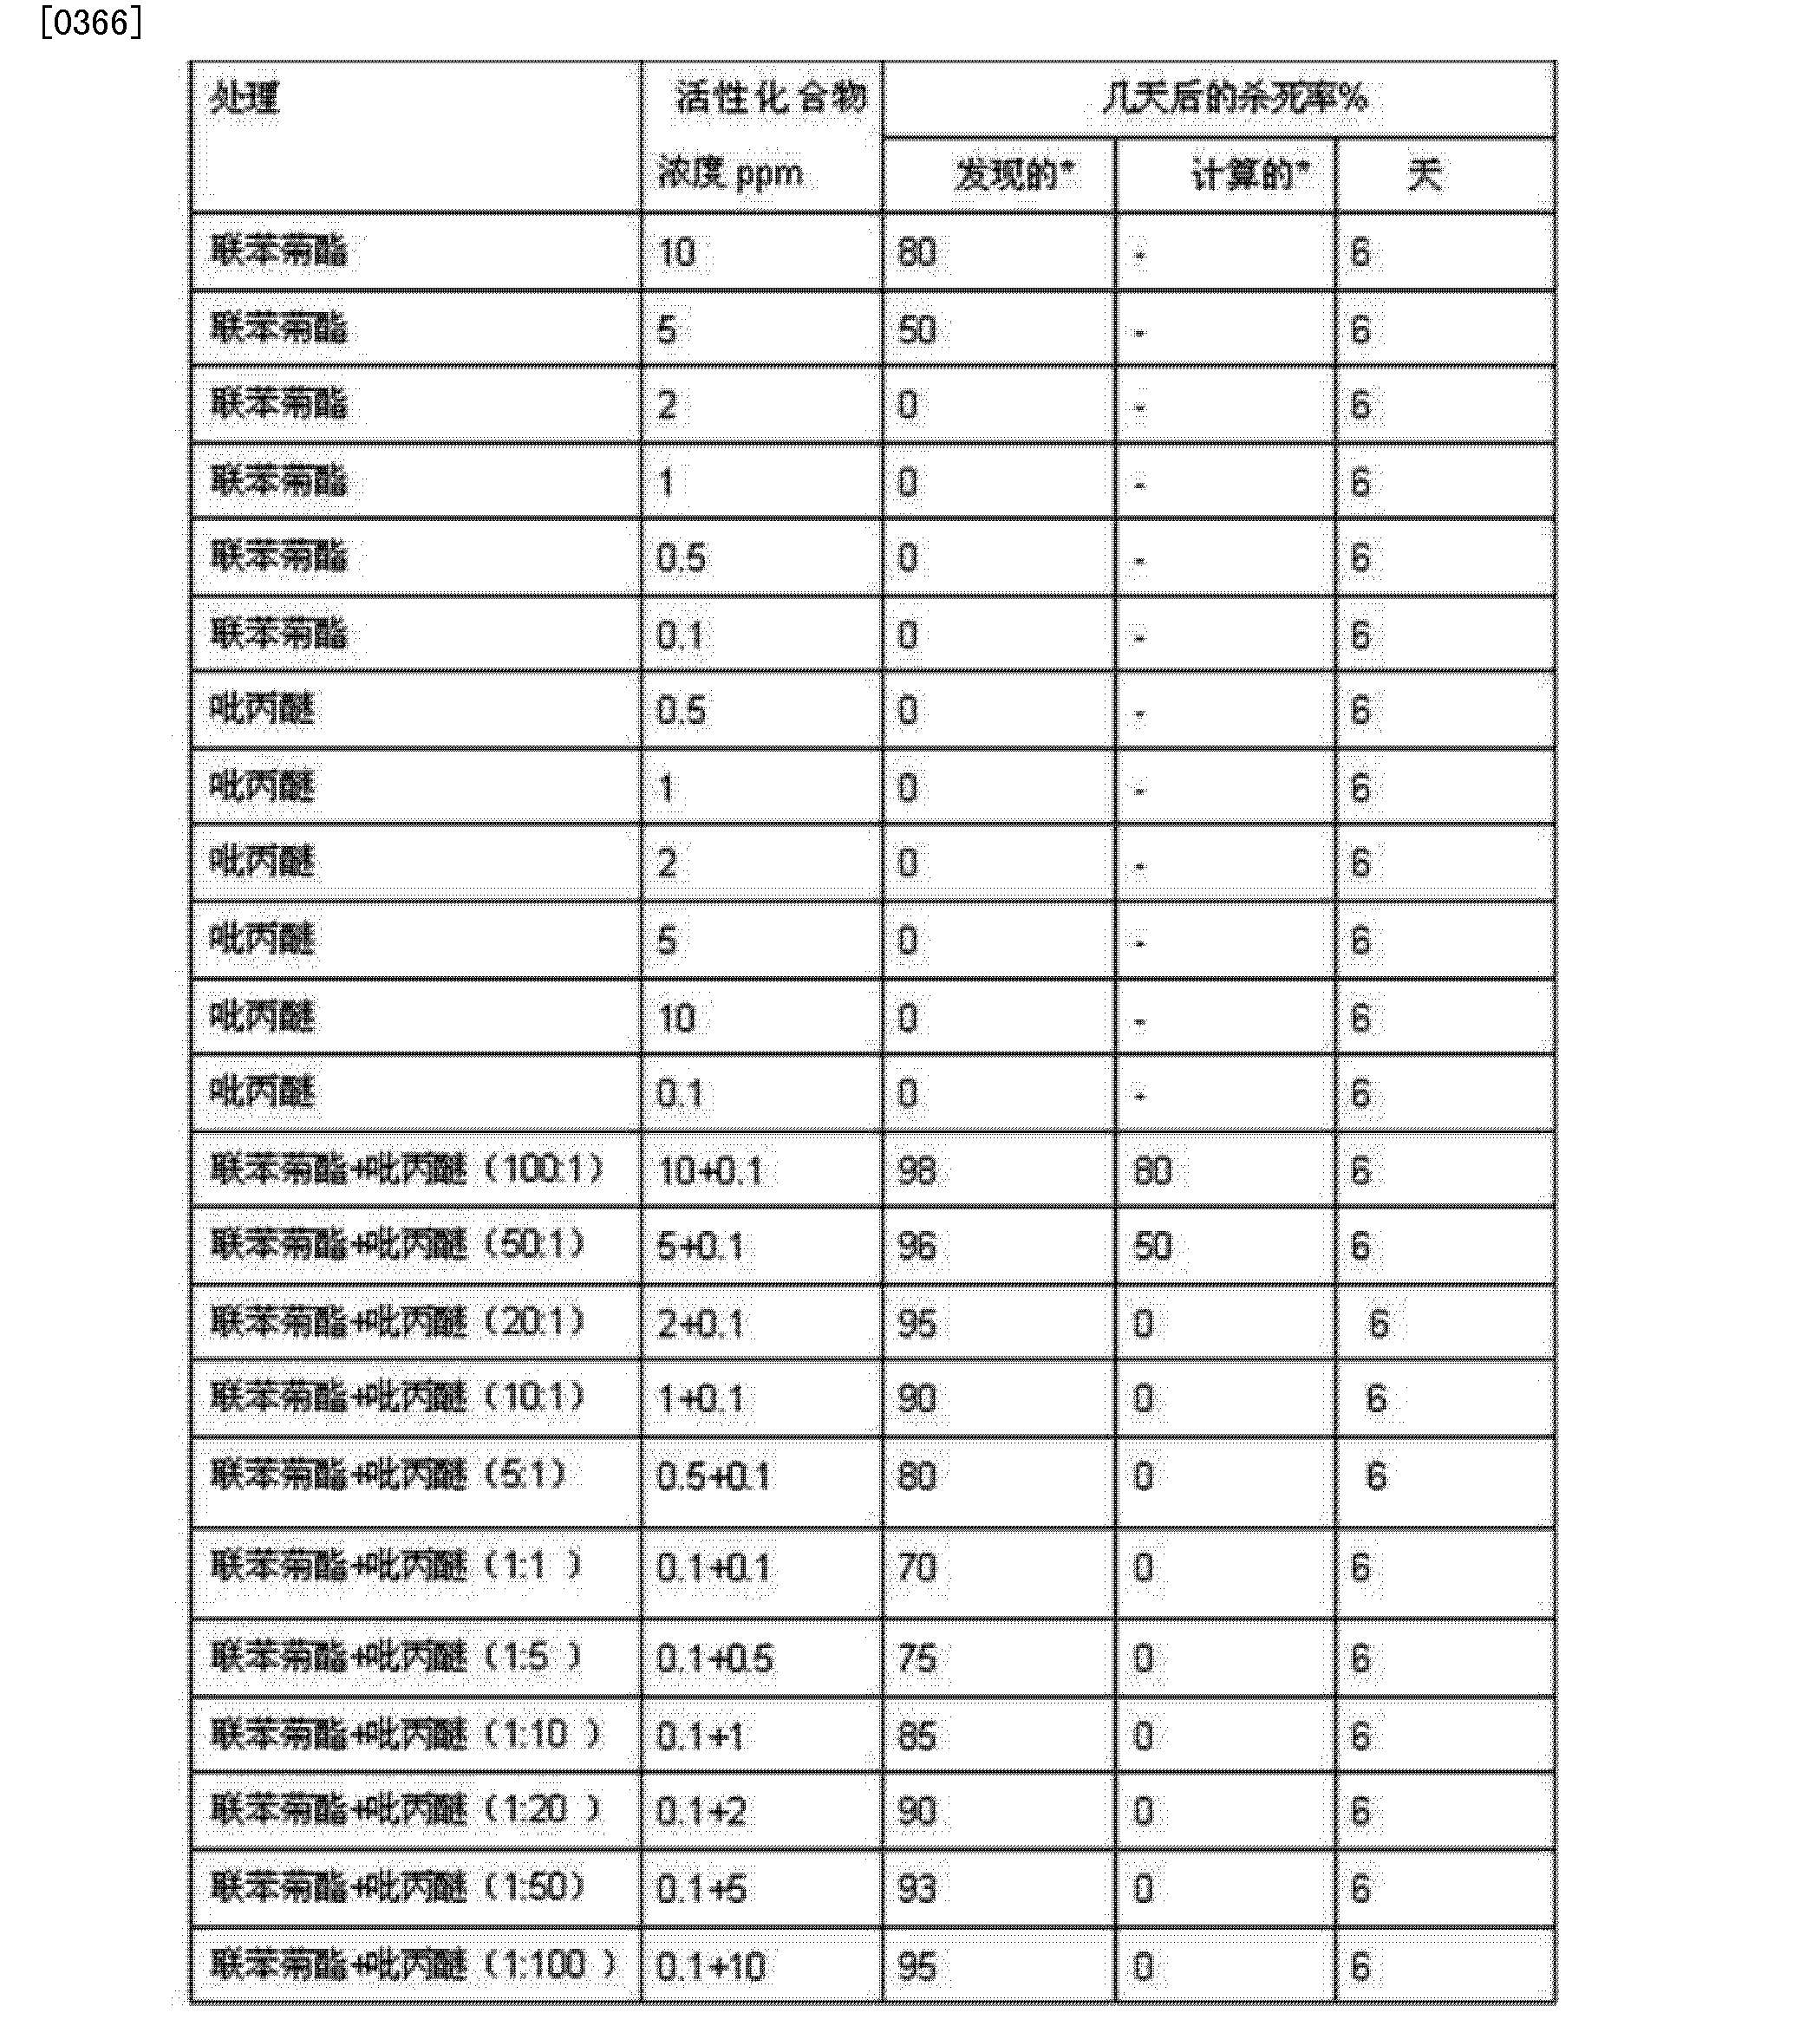 CN102986719B - Insecticide composition containing bifenthrin